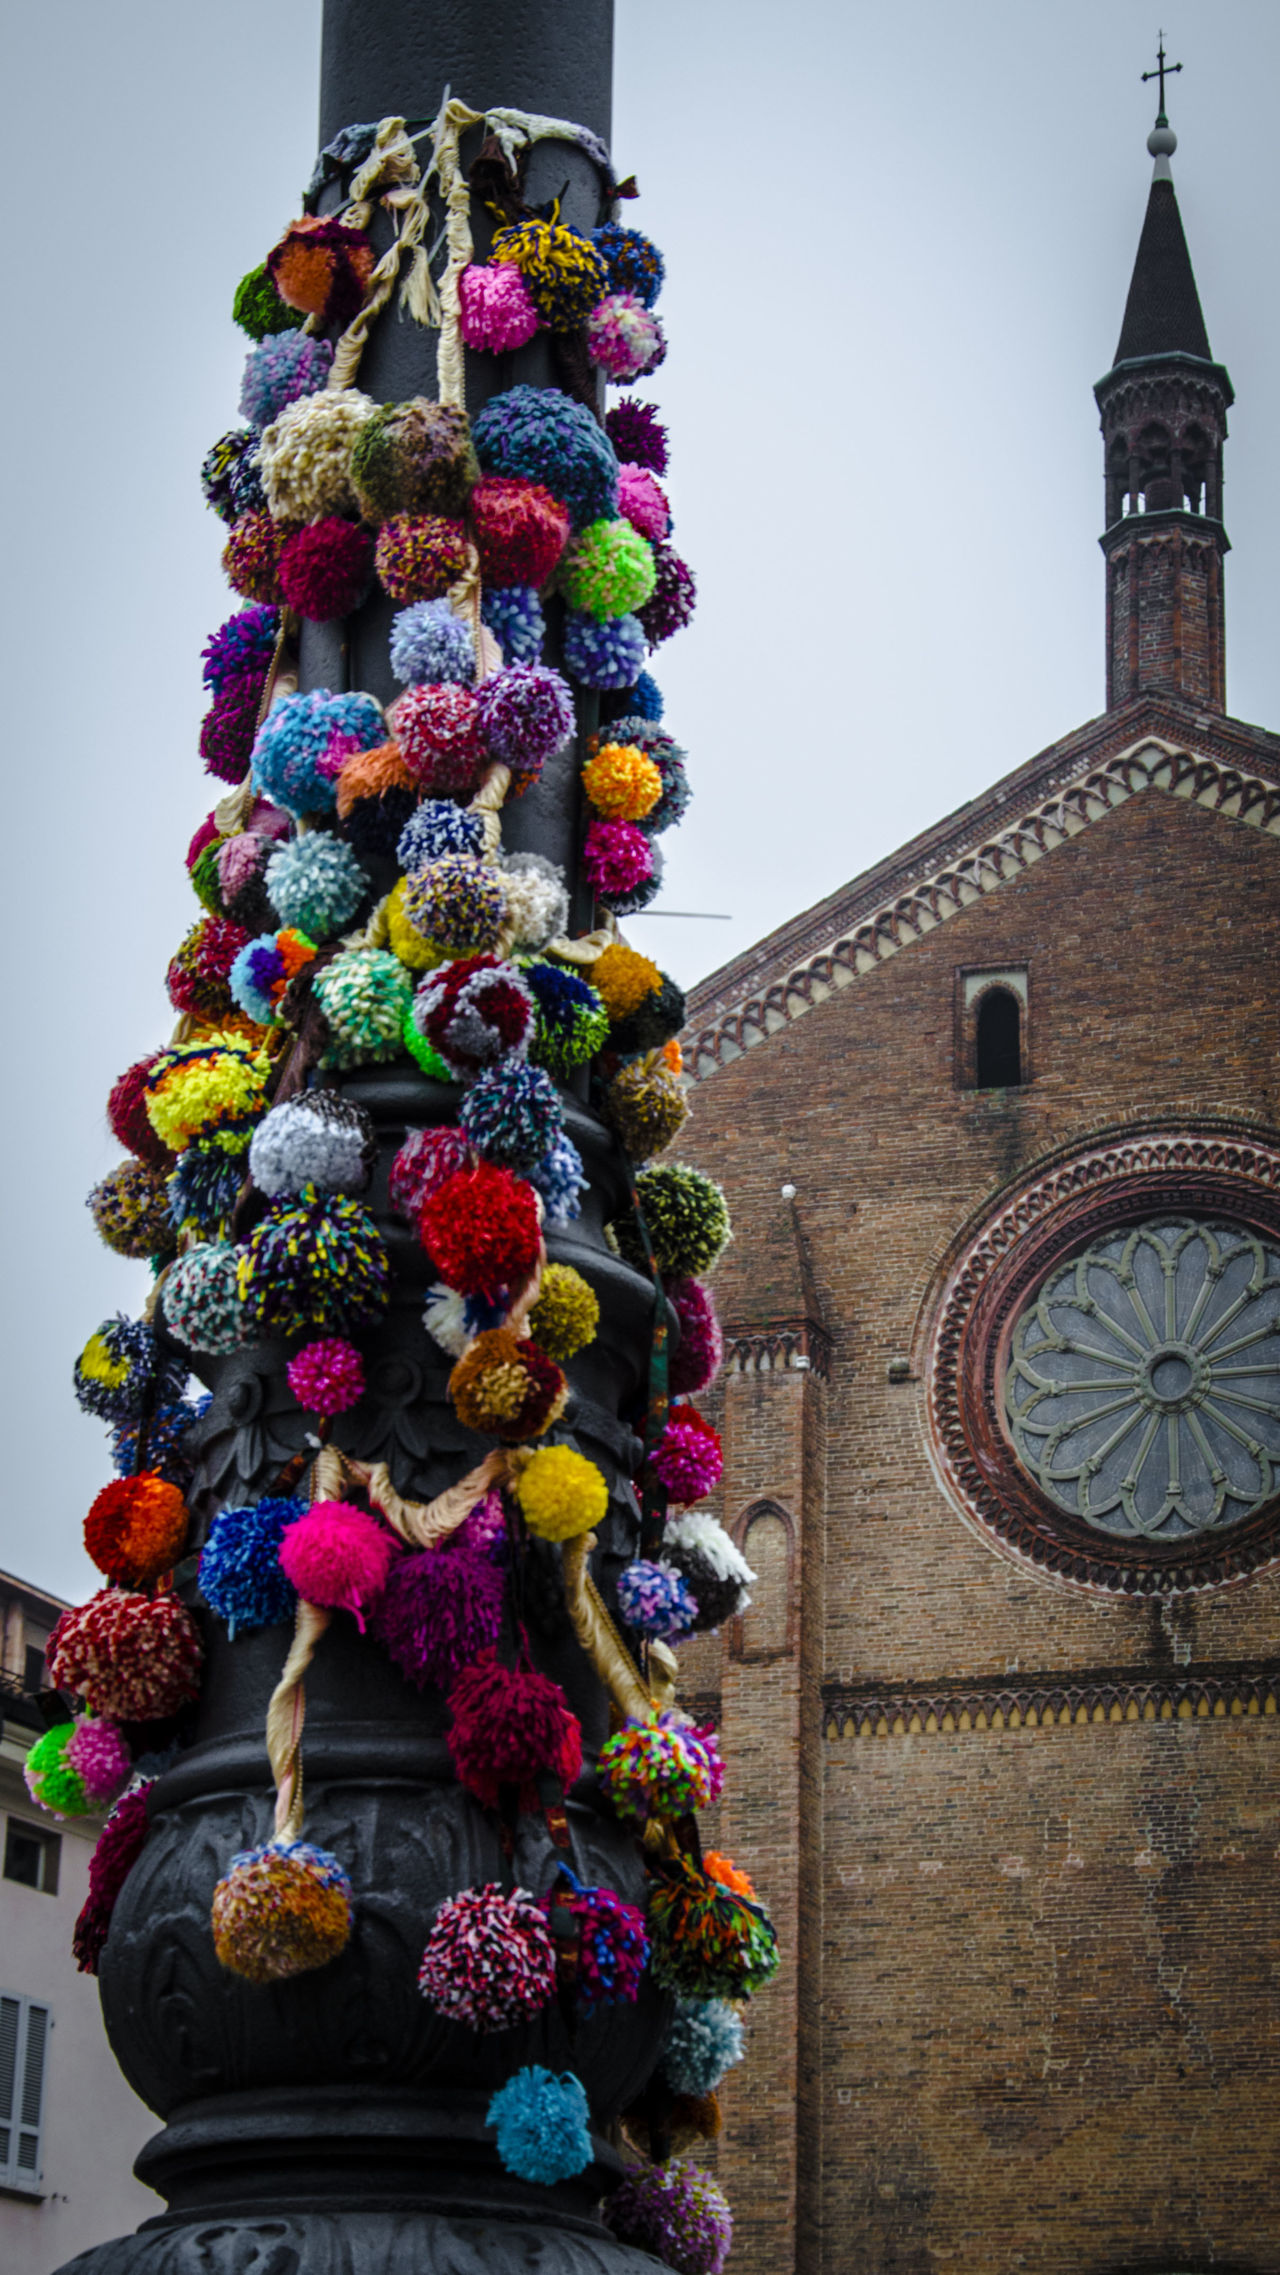 Architecture Building Exterior Cathedral Church Cross Knitting Knittingproject No People Spirituality To Knit Colour Of Life